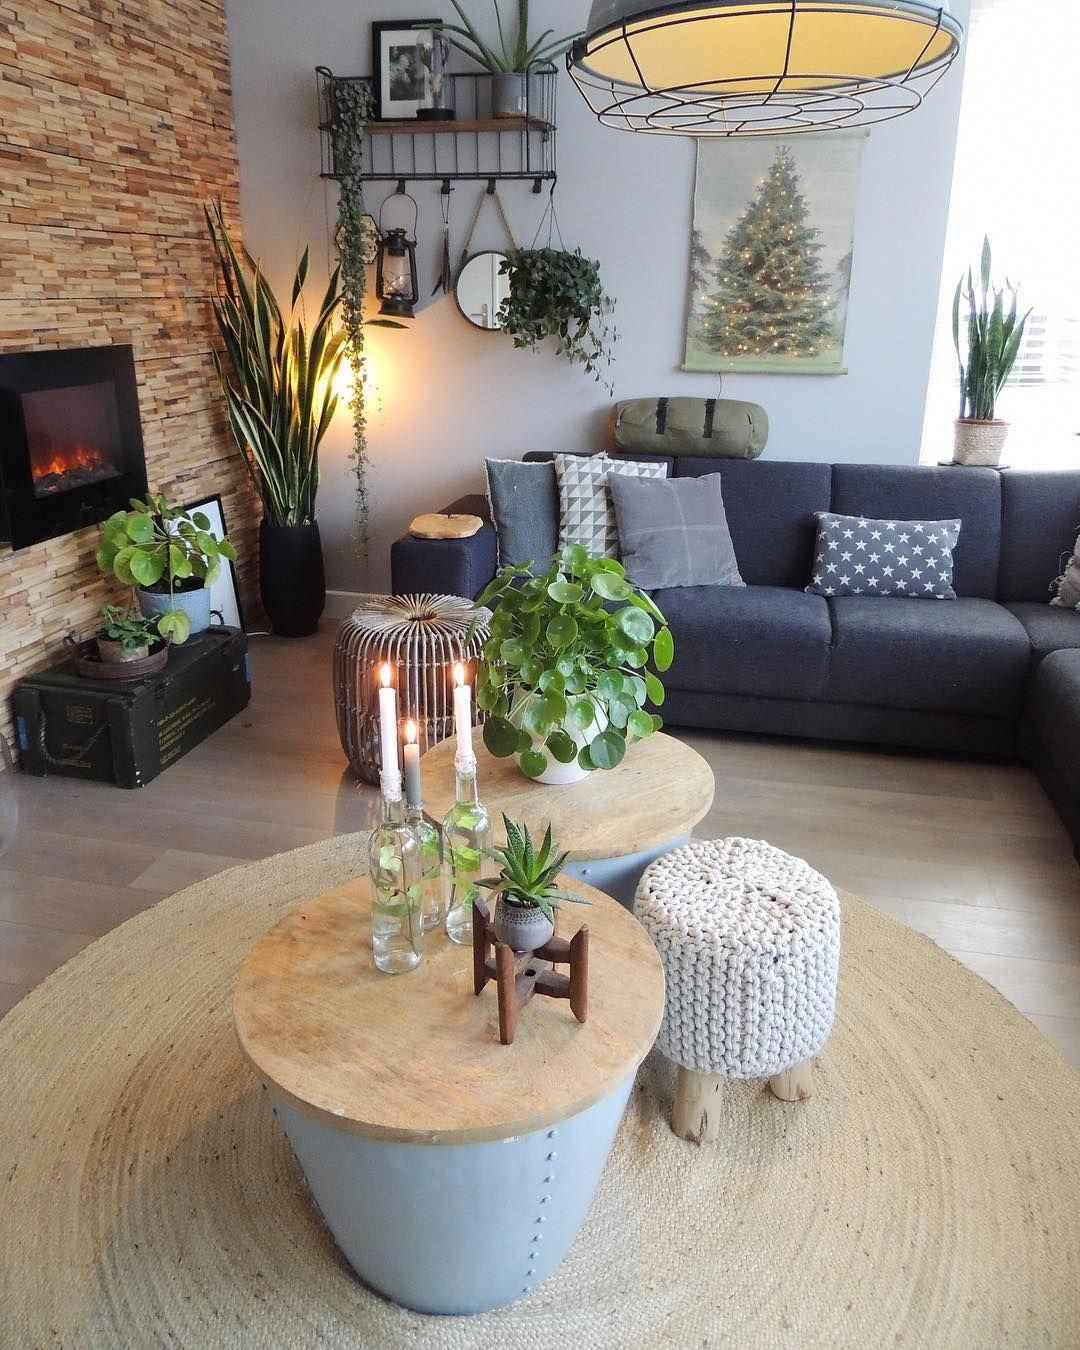 Redecorating Living Room: Read More About Redecorating Home House Click The Link To